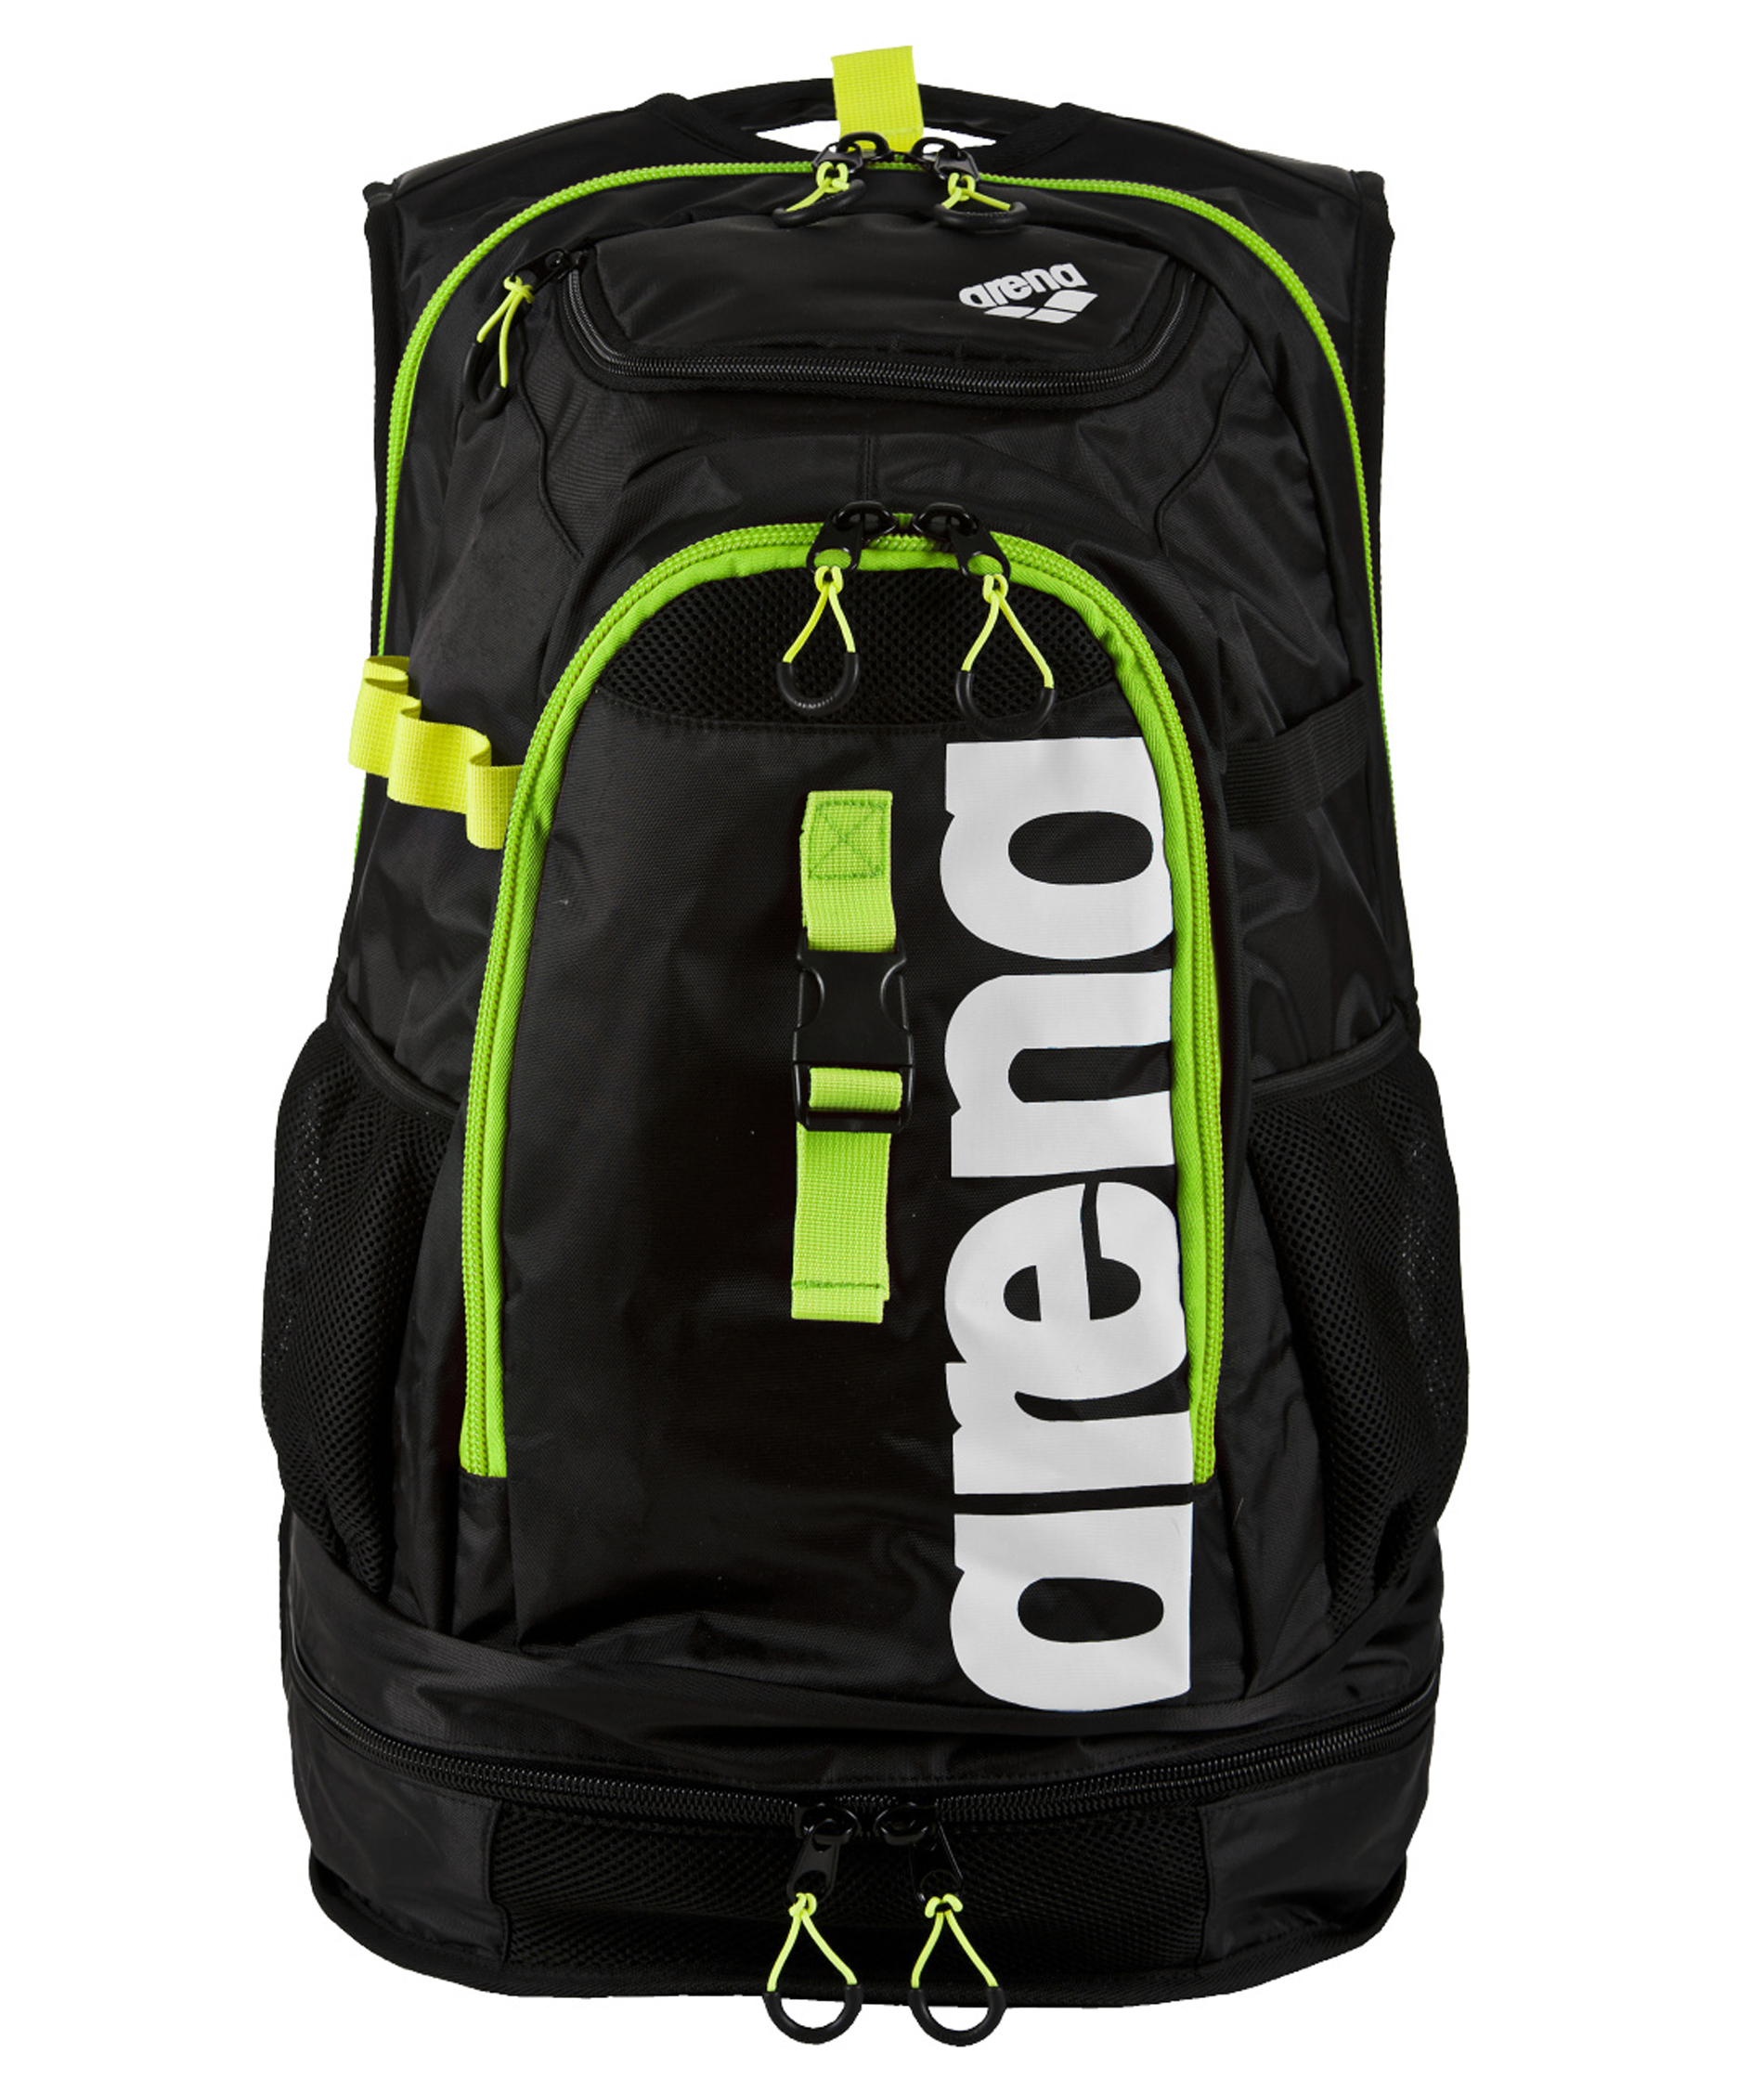 Arena Fastpack 2.1 Backpack - Black/Flou Yellow